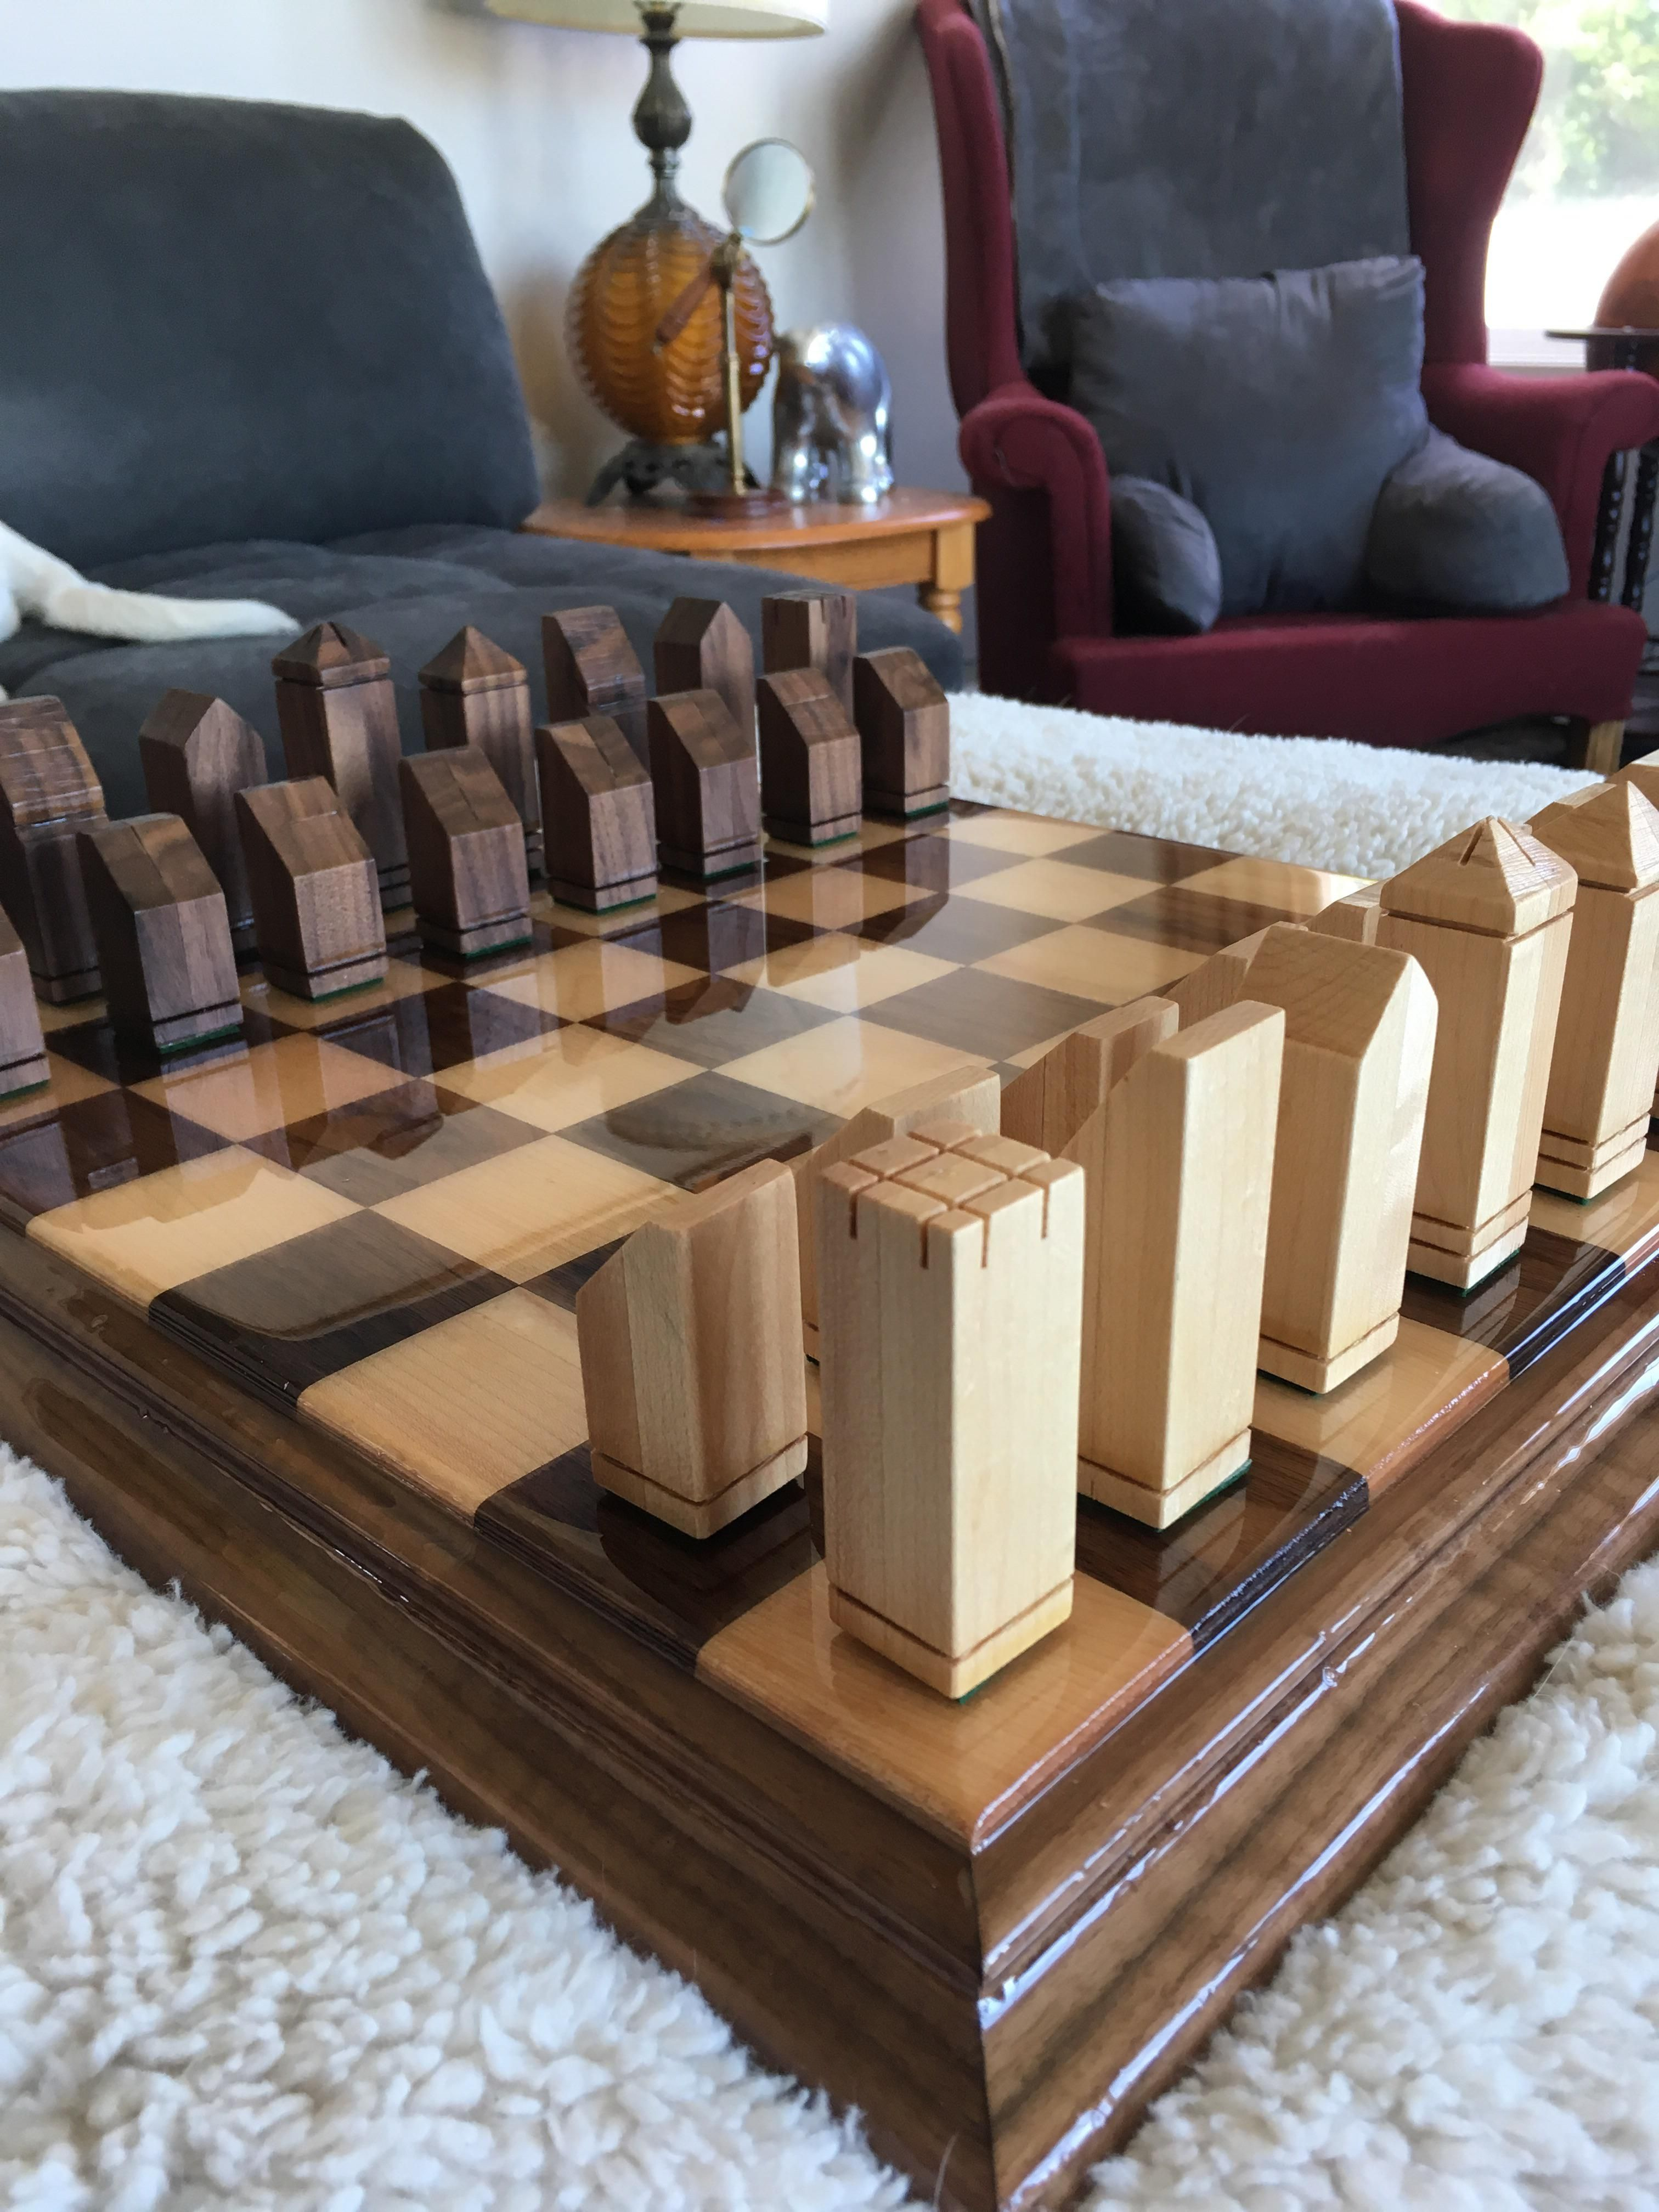 Chess board and set for my fiancés wedding gift. First